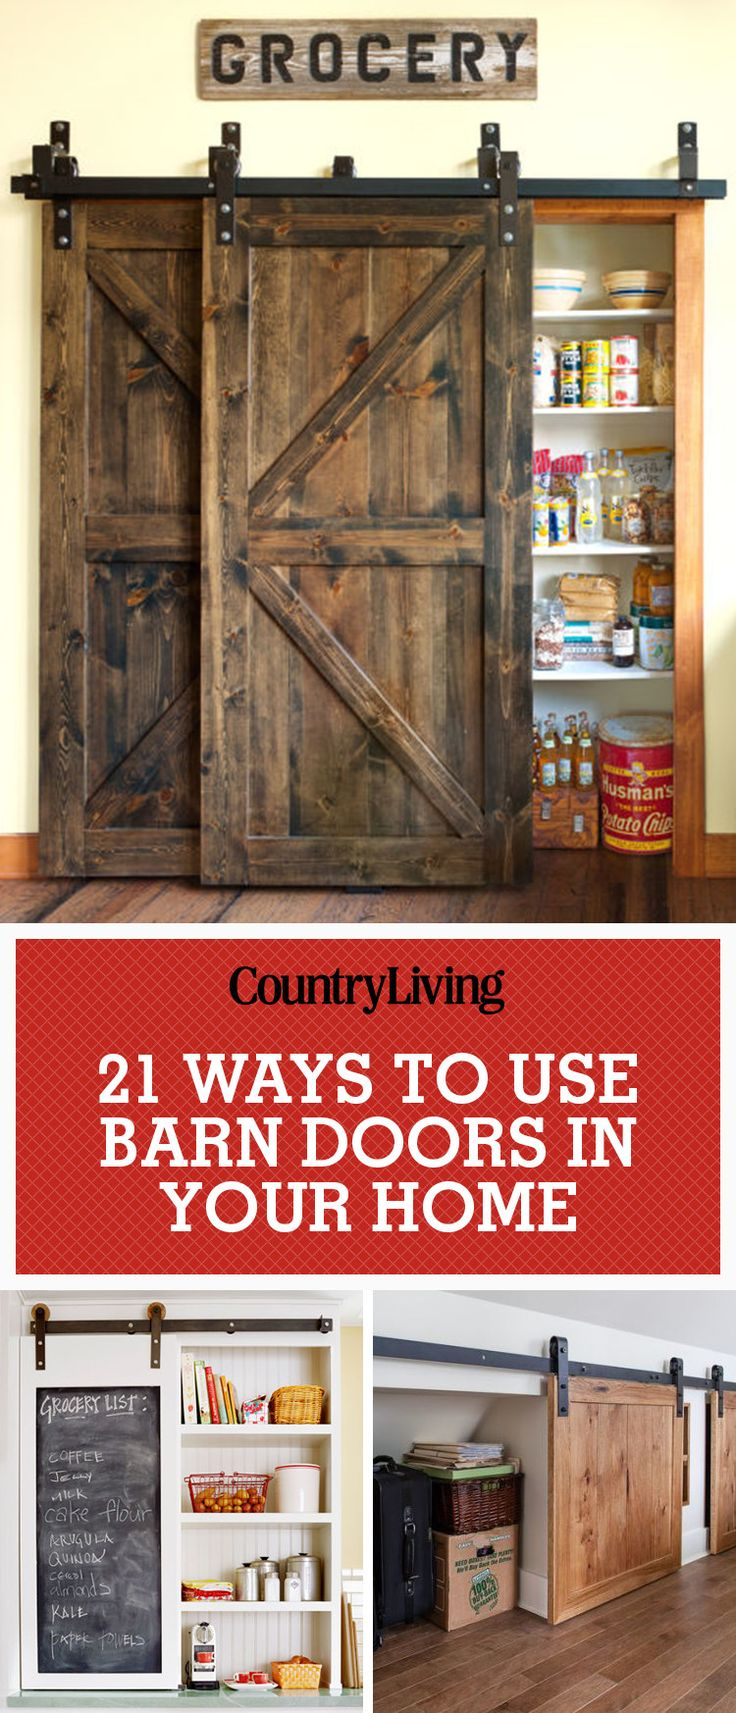 Believe it or not, barn doors make for innovative and elegant decor in your home. Save these ideas, and you'll see for yourself!